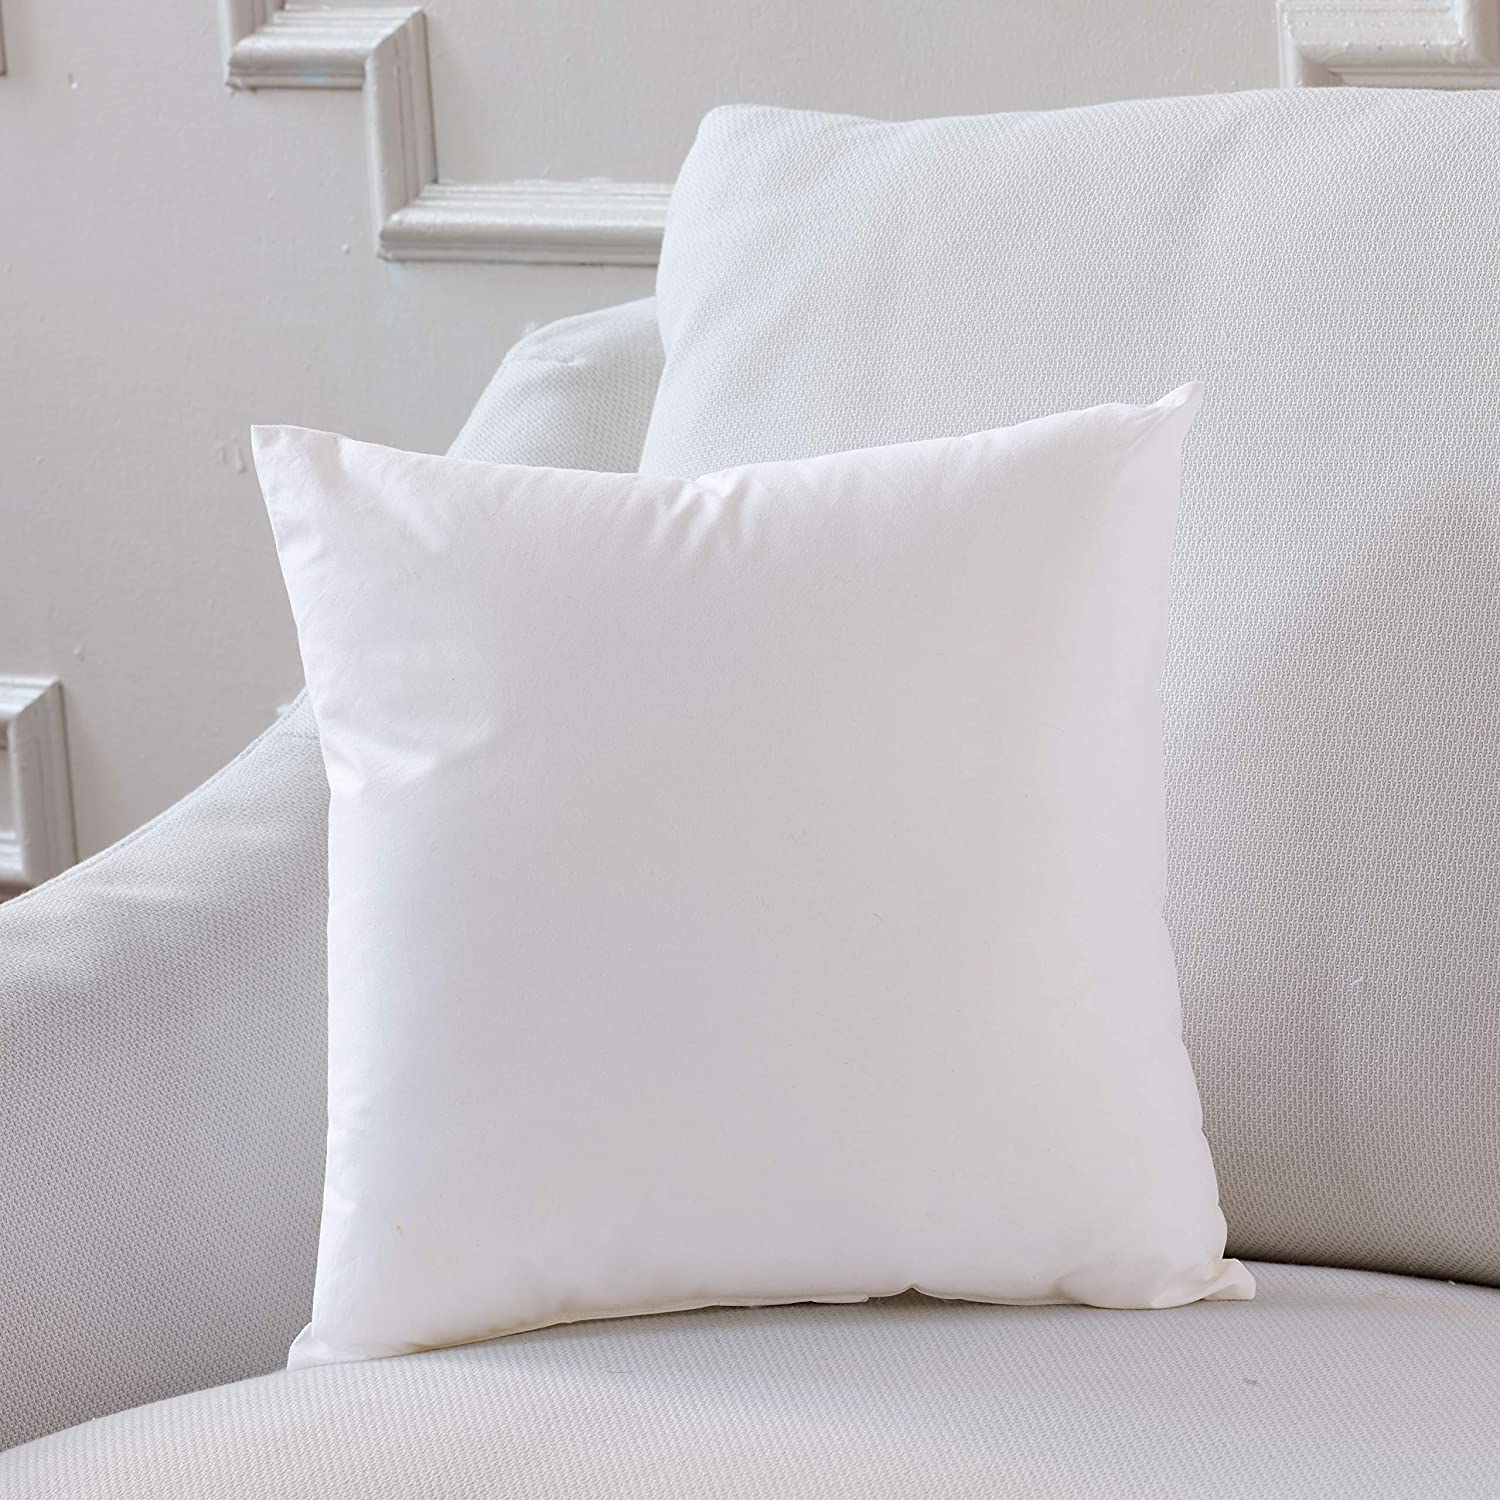 27x27x3 Boxed Pillow Insert PolyFeatherBlend Plankroad Home Decor Pillow Insert